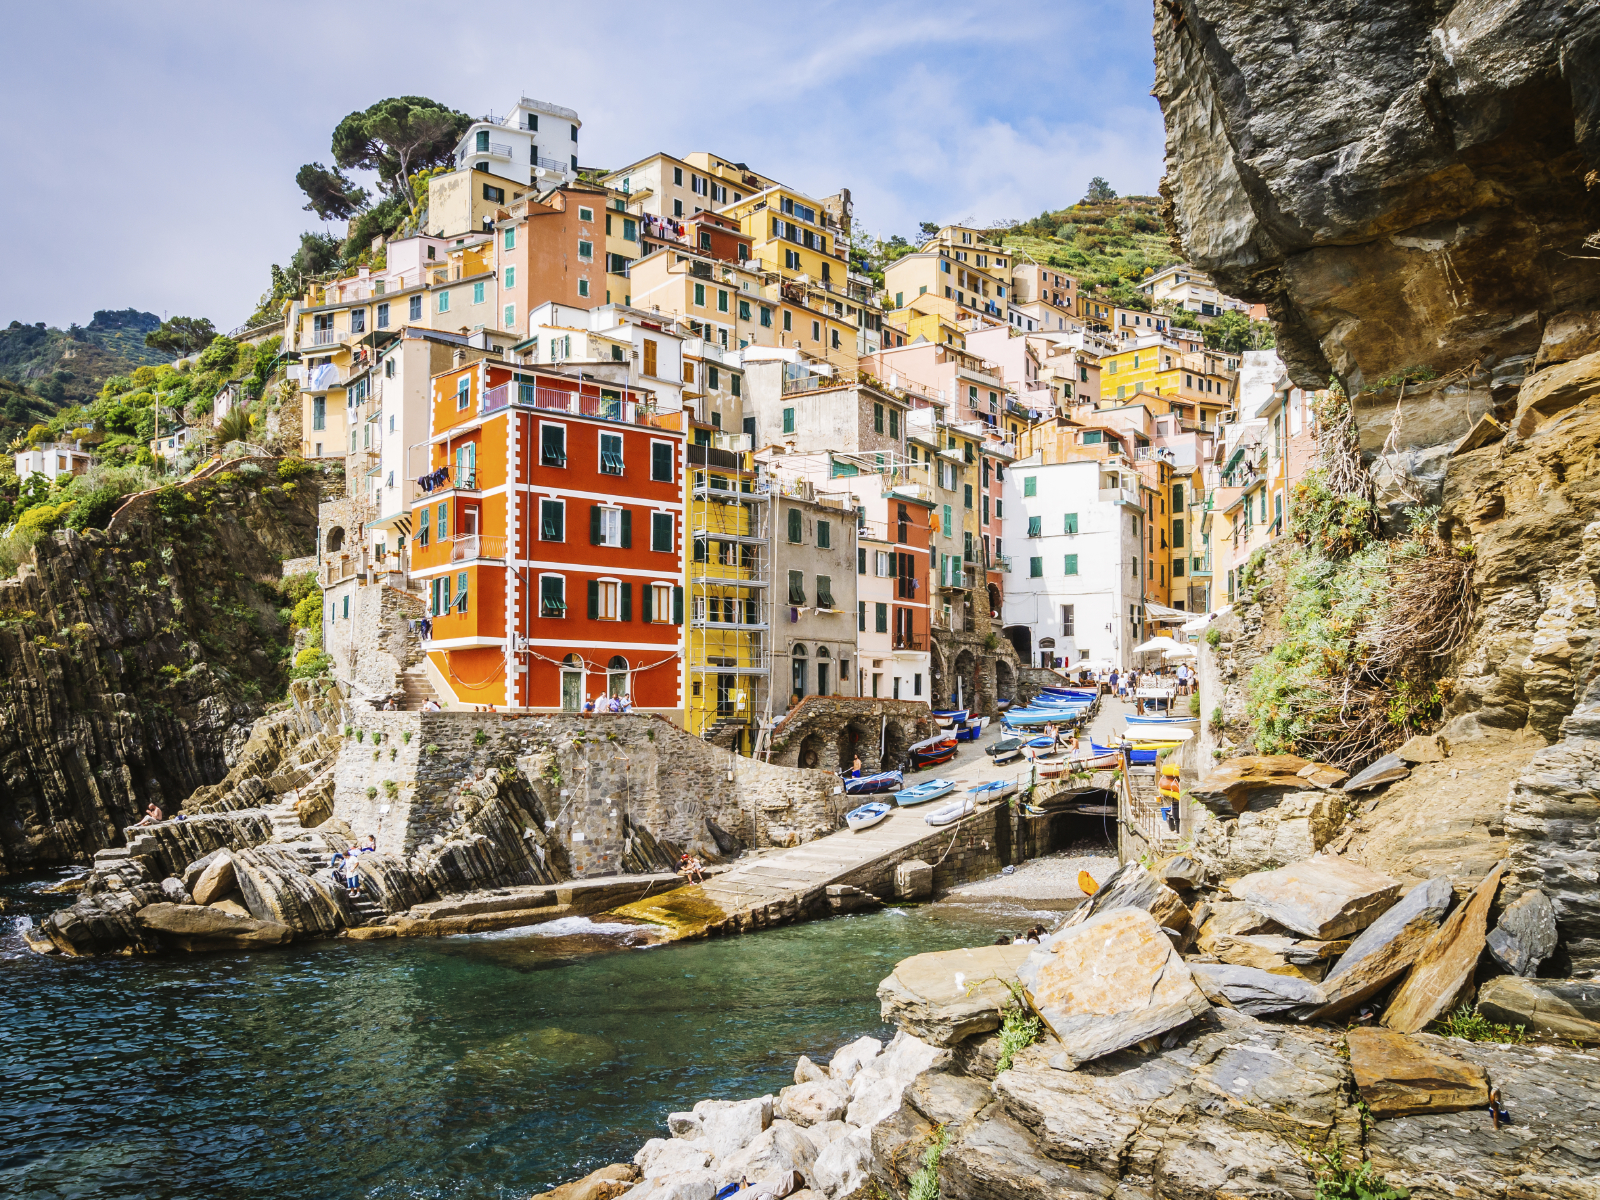 The Cinque Terre tops the list of the worlds most Instagrammed villages